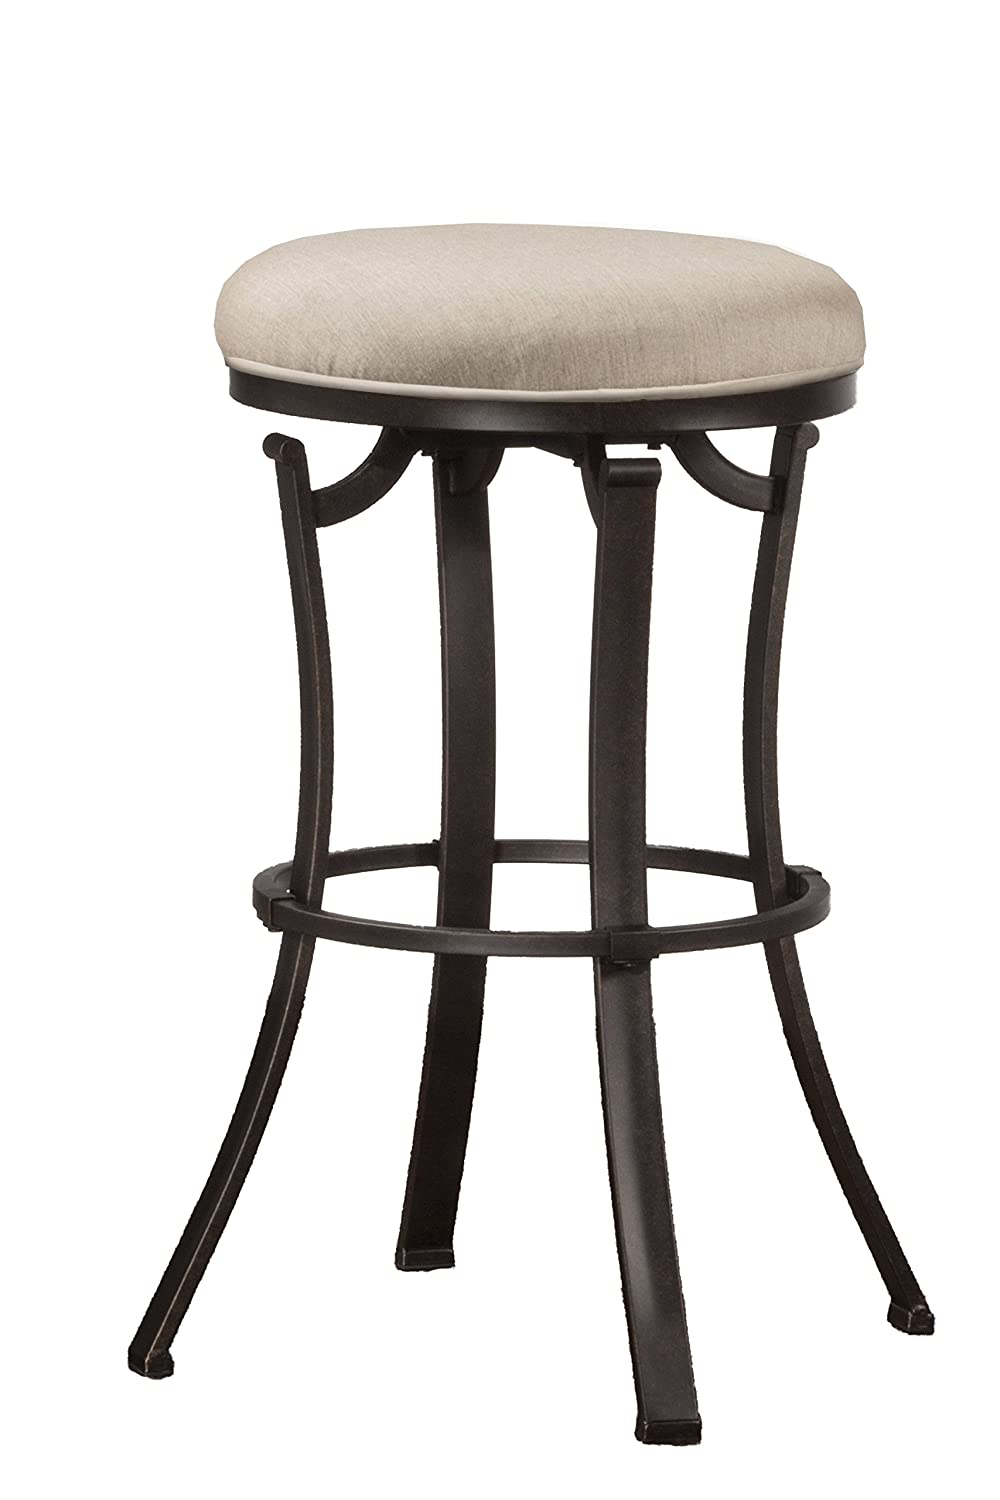 Hillsdale Furniture Bryce Swivel Counter Stool, Black